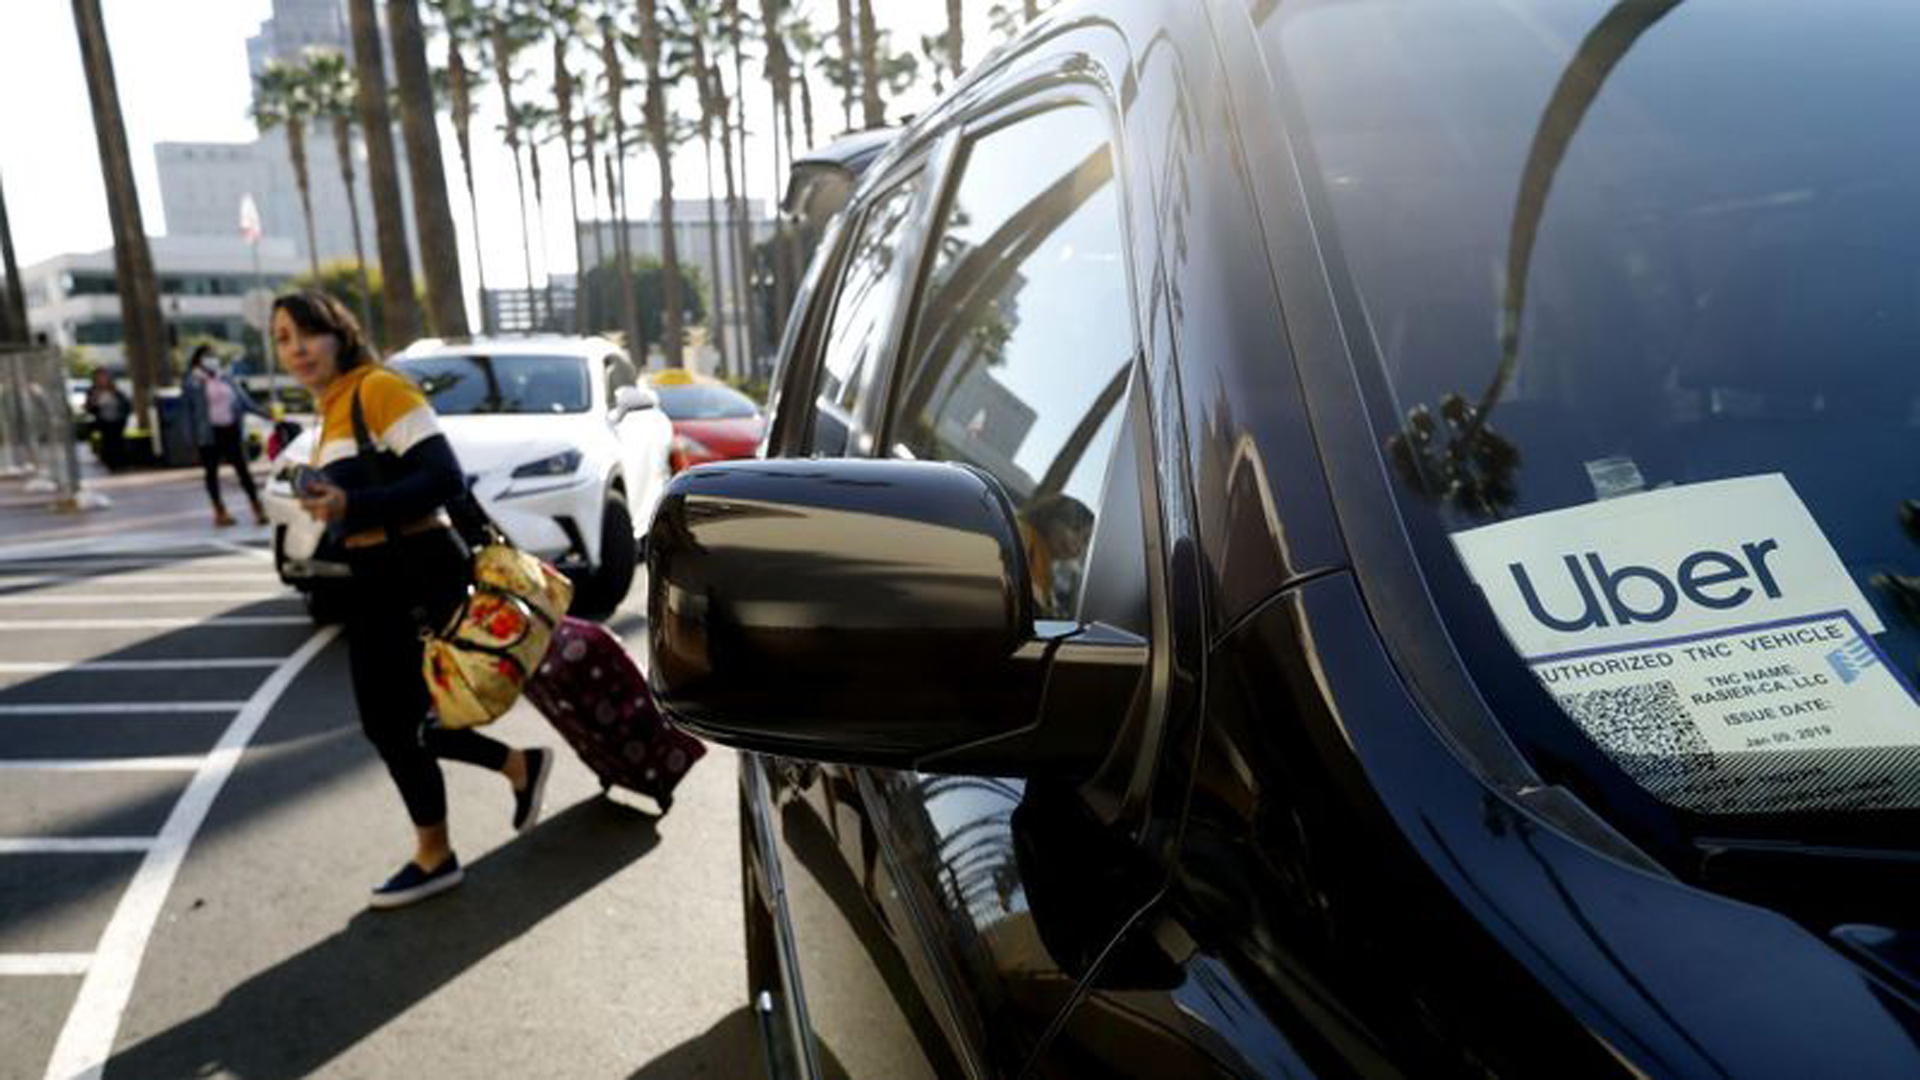 A passenger exits an Uber at Union Station in Los Angeles in this undated photo. (Credit: Francine Orr / Los Angeles Times)